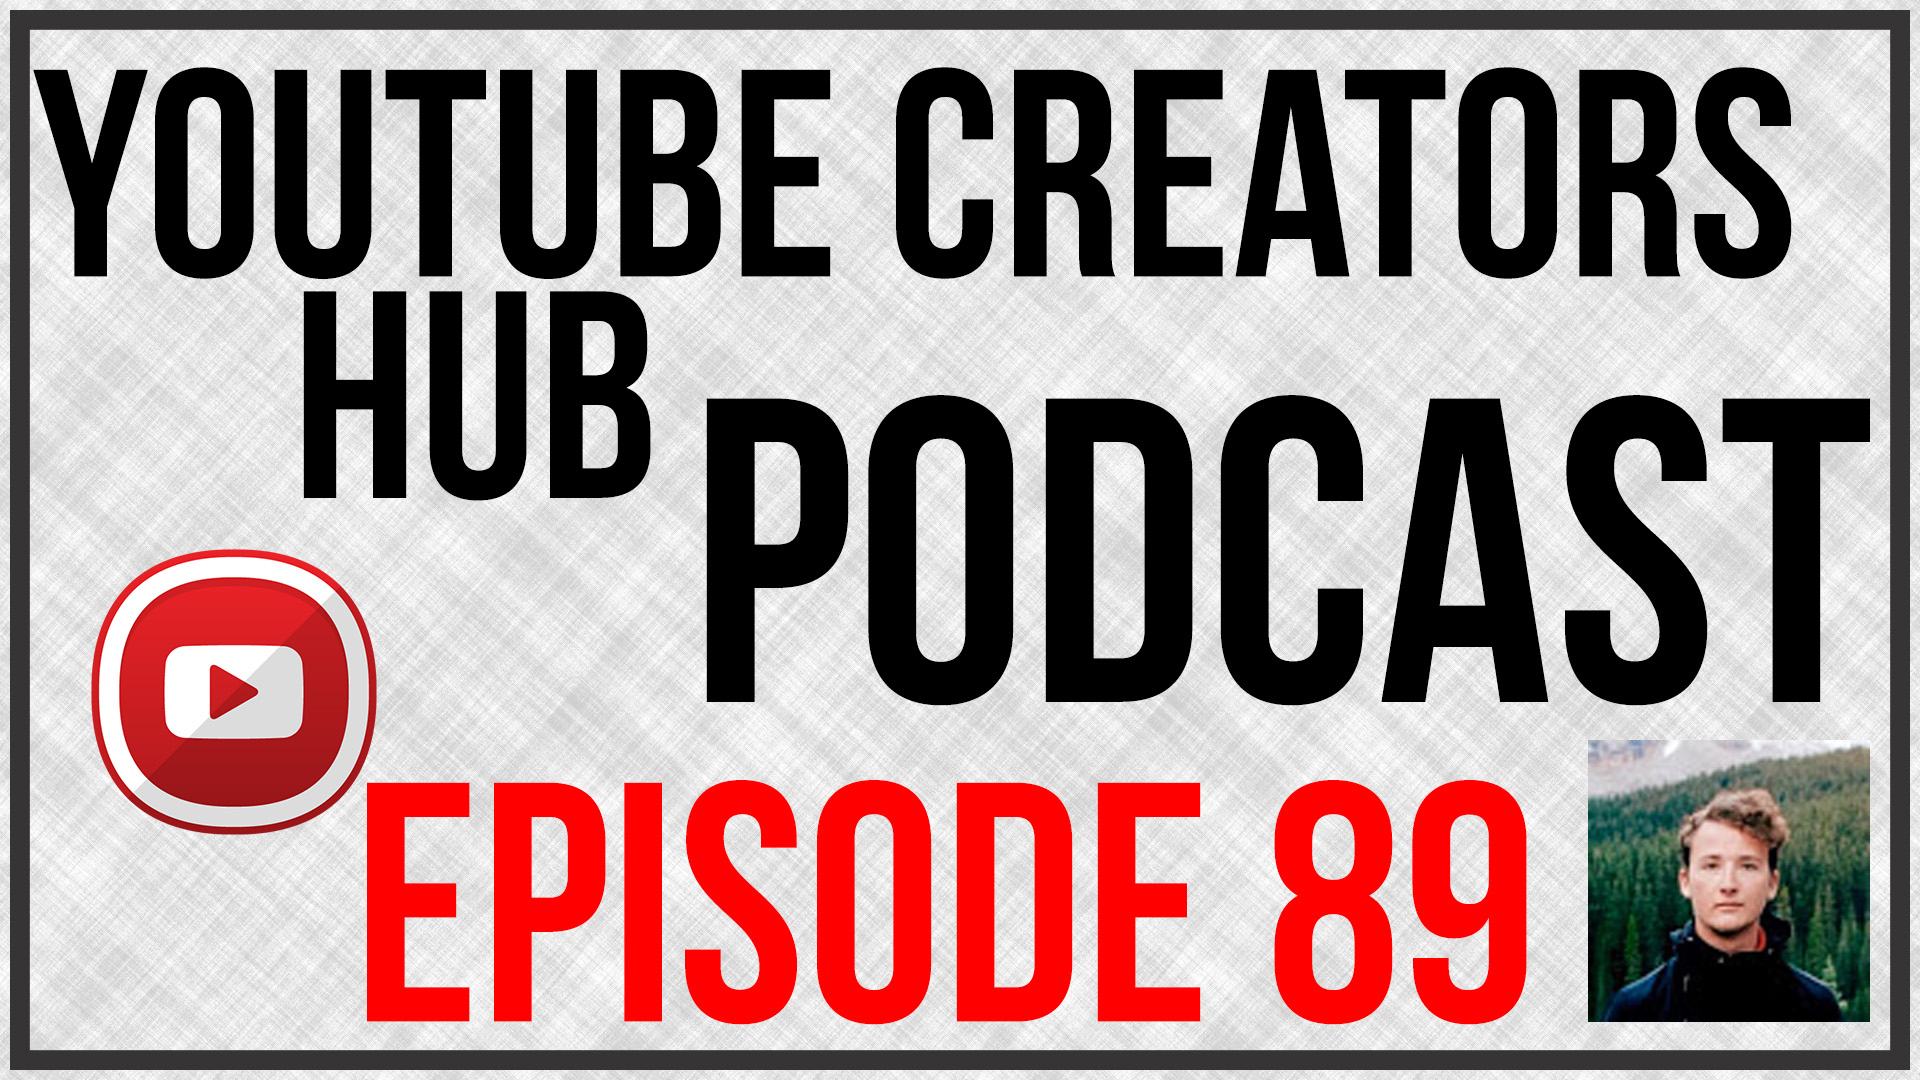 YouTube Creators Hub Podcast Episode 89